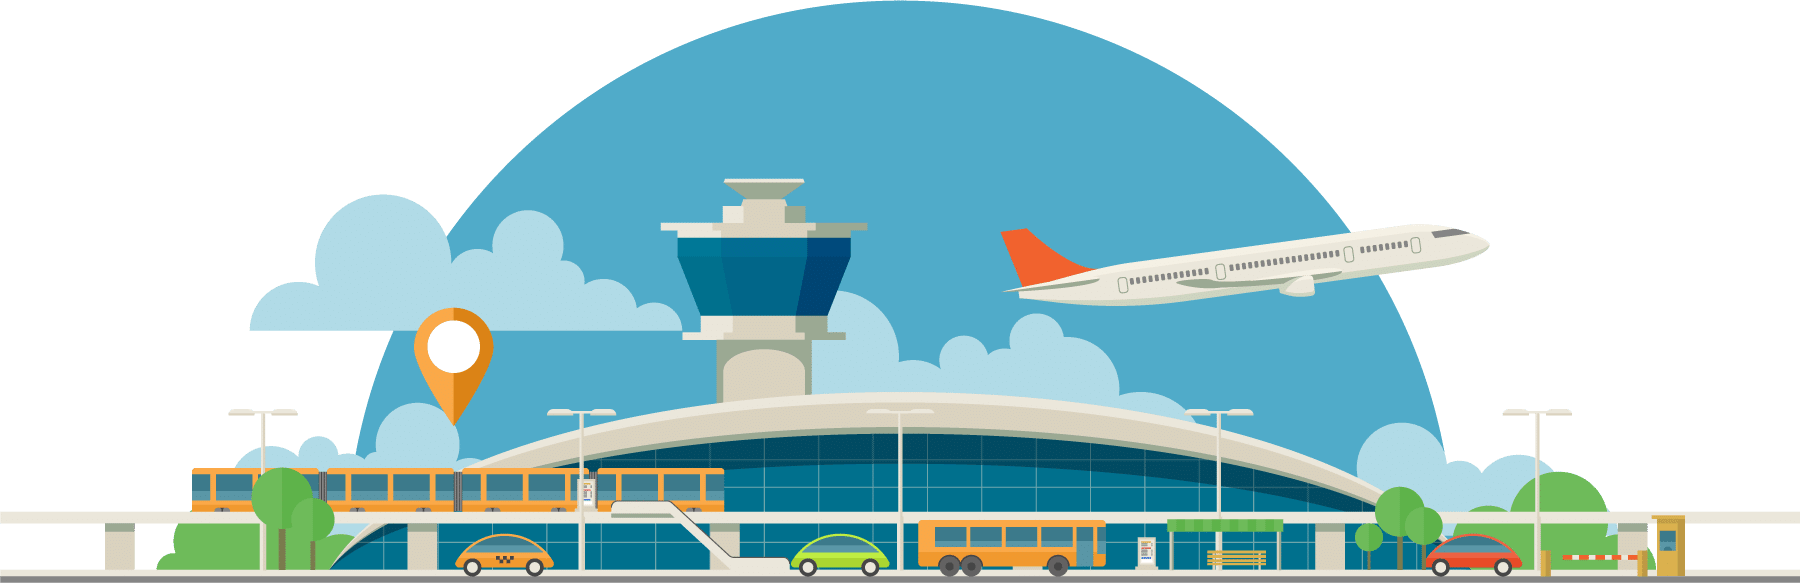 Illustrated airport.